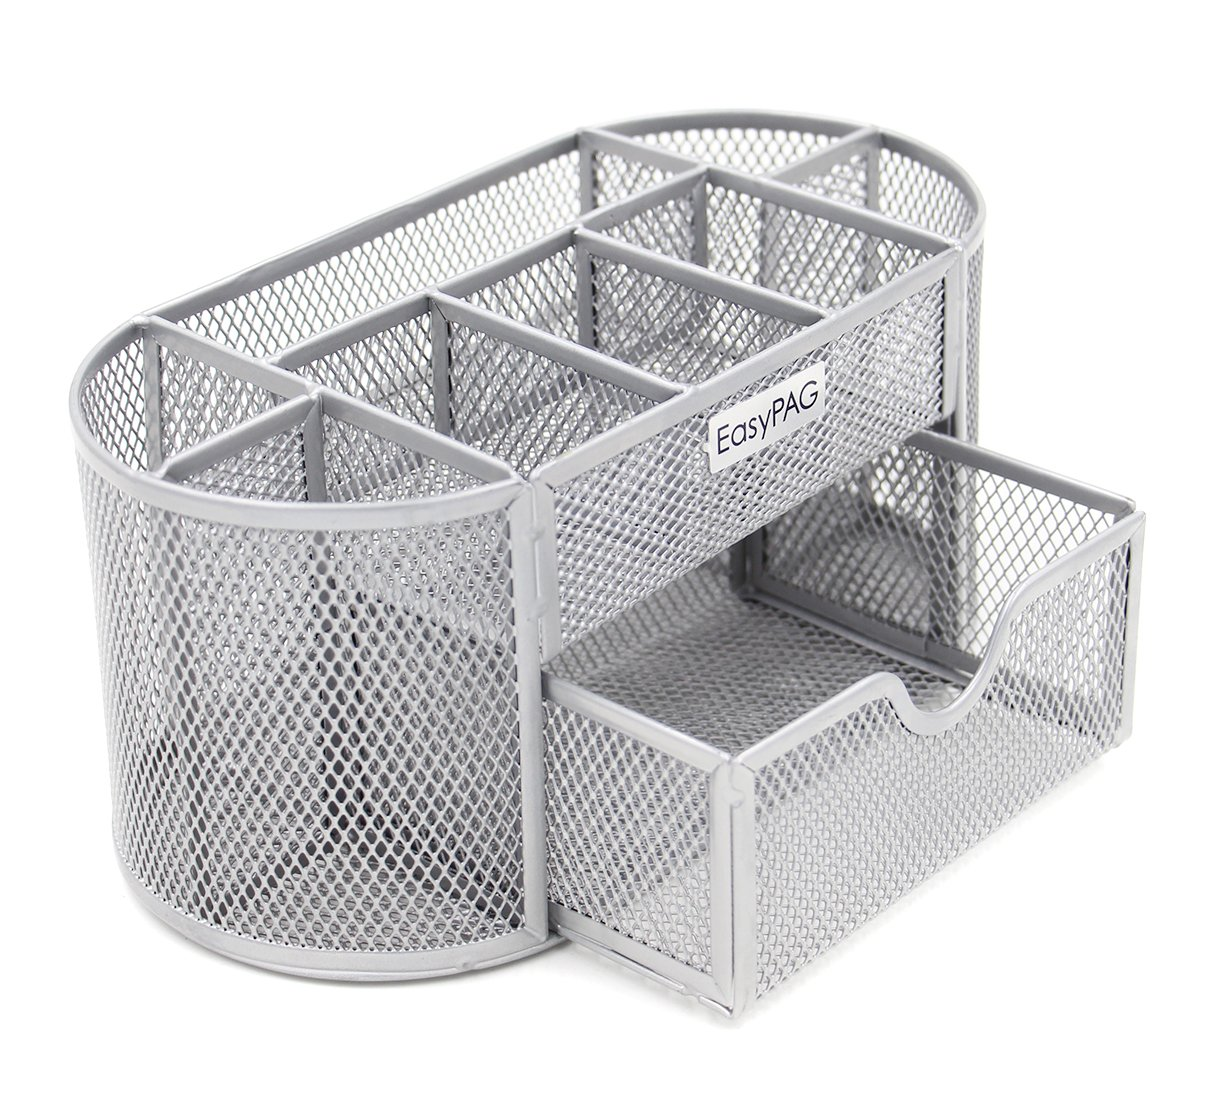 EasyPAG Mesh Office Desk Accessories Organizer 9 Components with Drawer, Silver Baike SYNCHKG080270